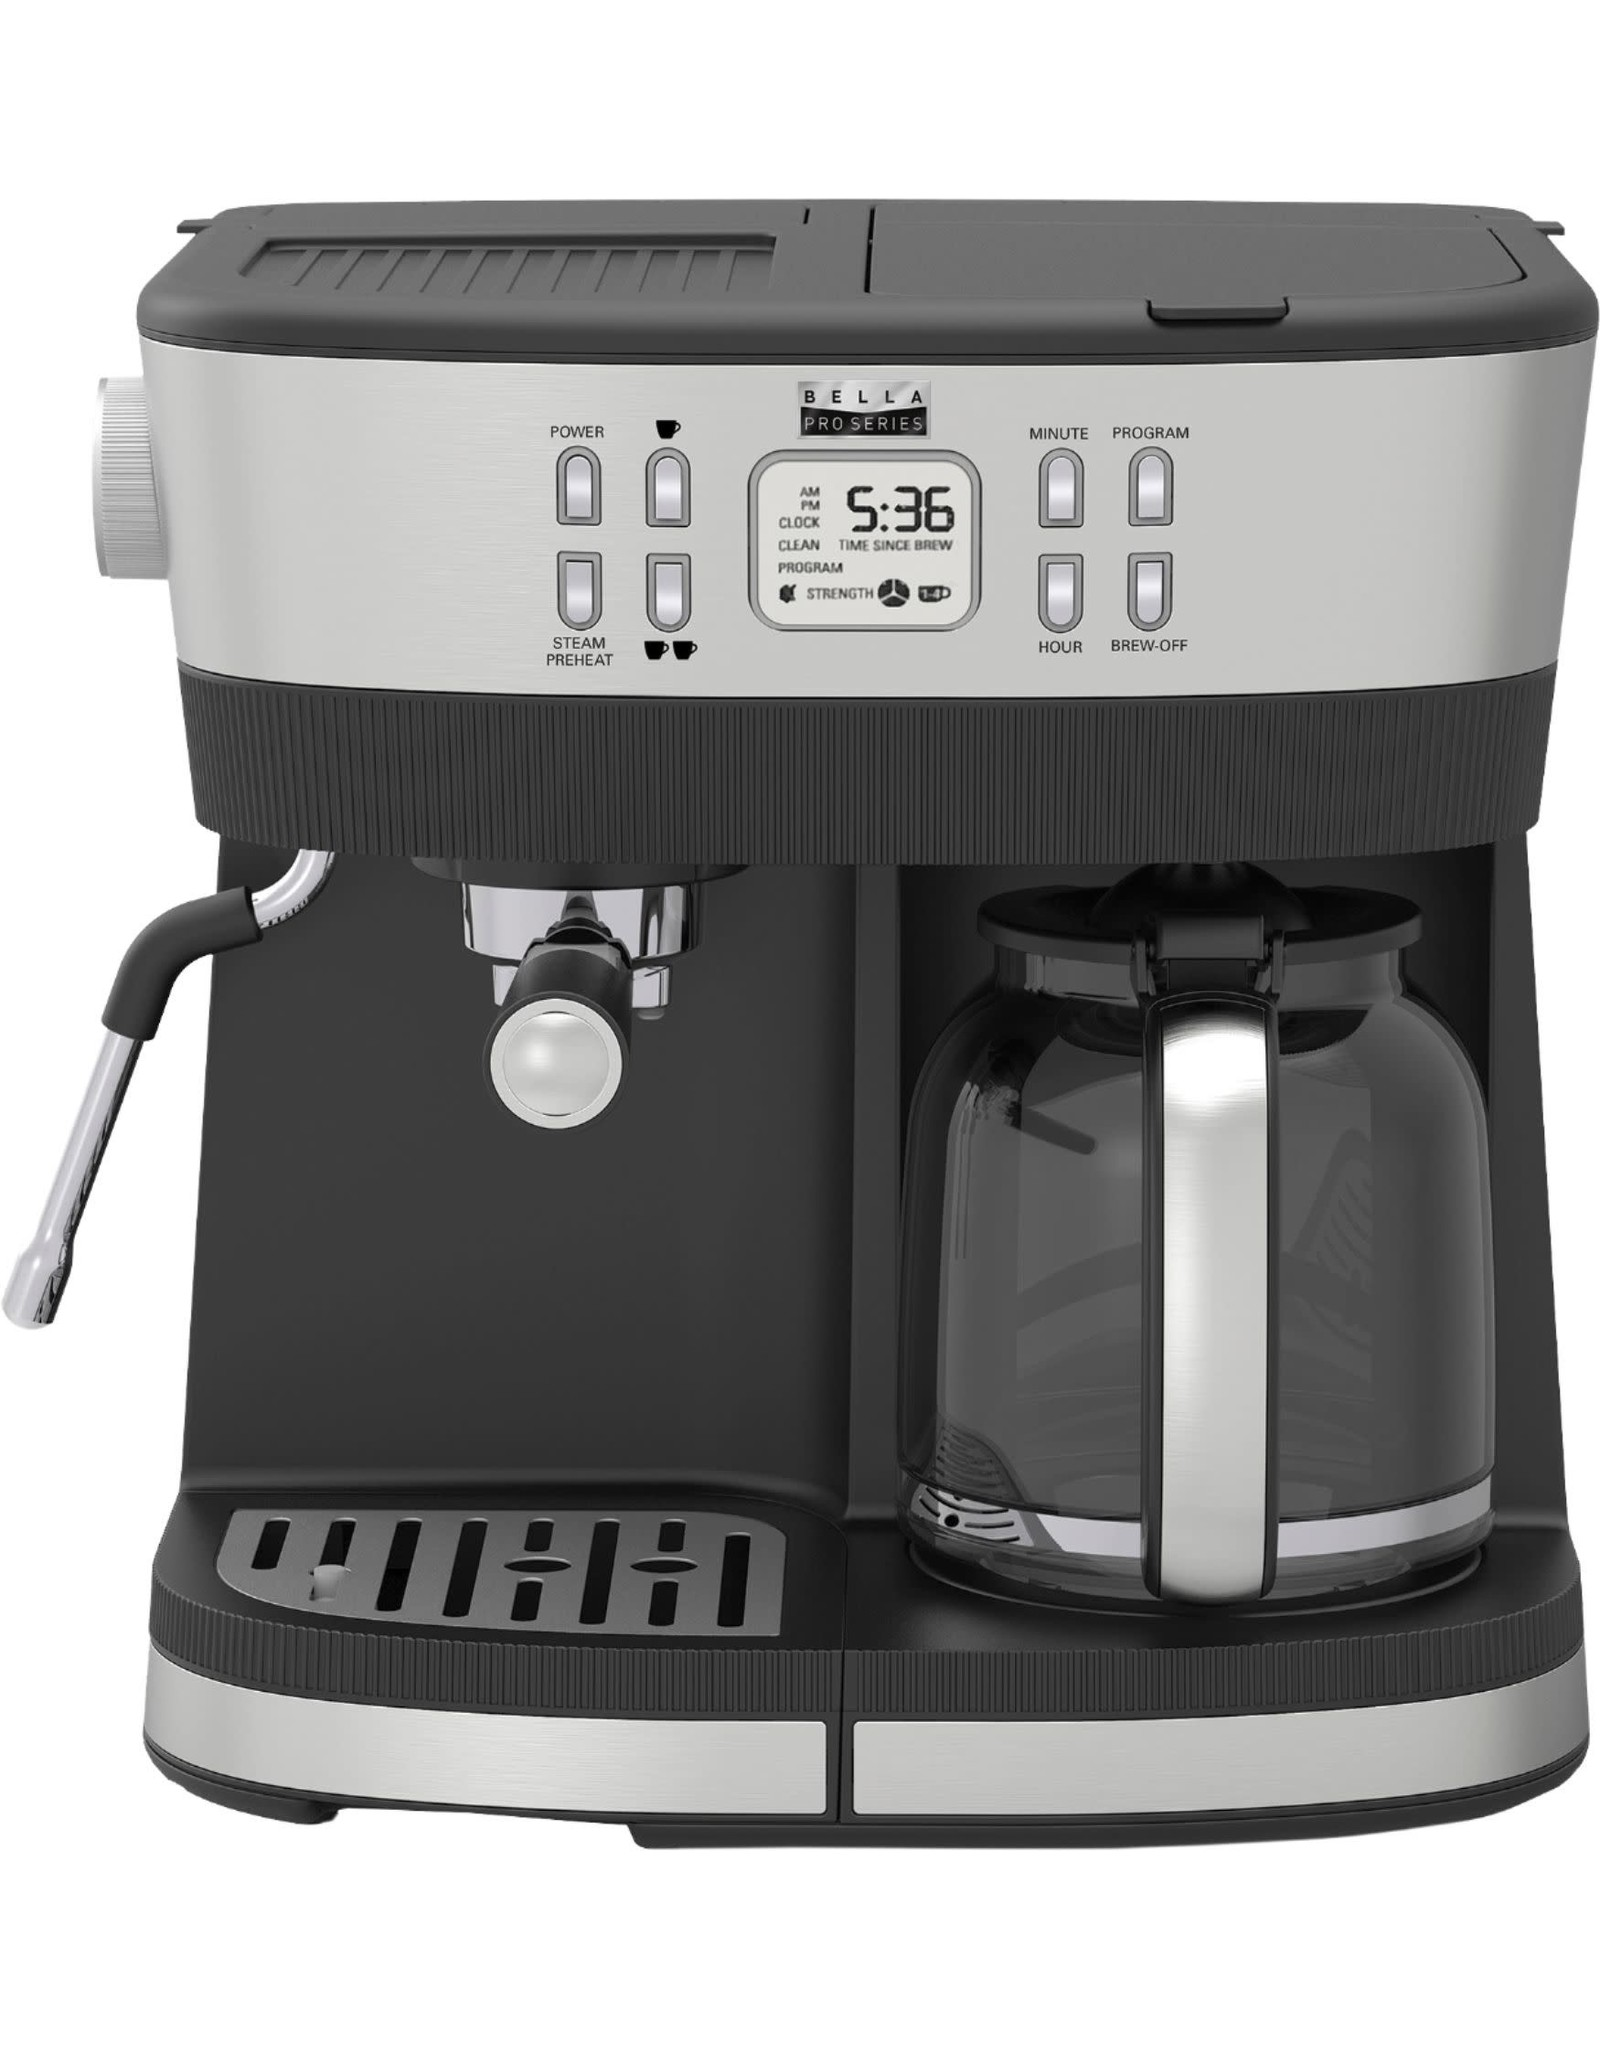 Bella pro 90103 Bella Pro Series - Combo 19-Bar Espresso and 10-Cup Drip Coffee Maker - Stainless Steel